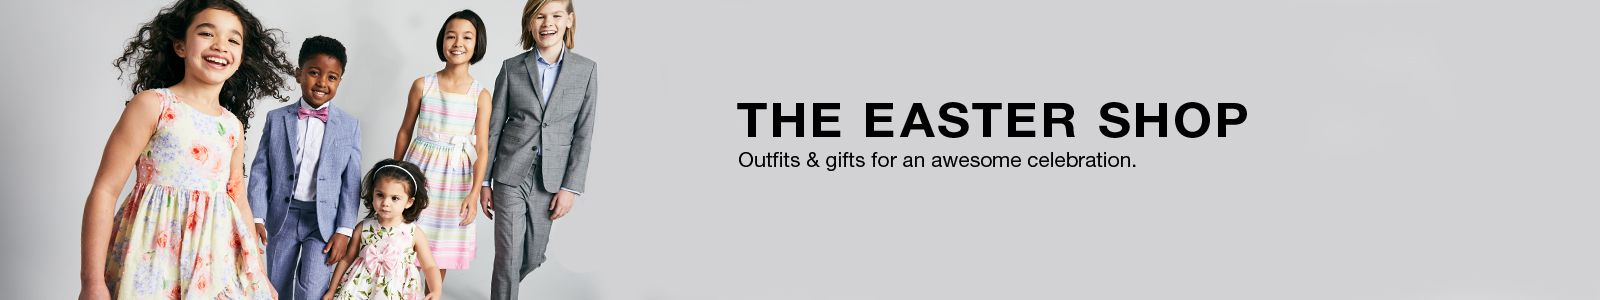 The Easter Shop, Outfits and gifts for an awesome celebration